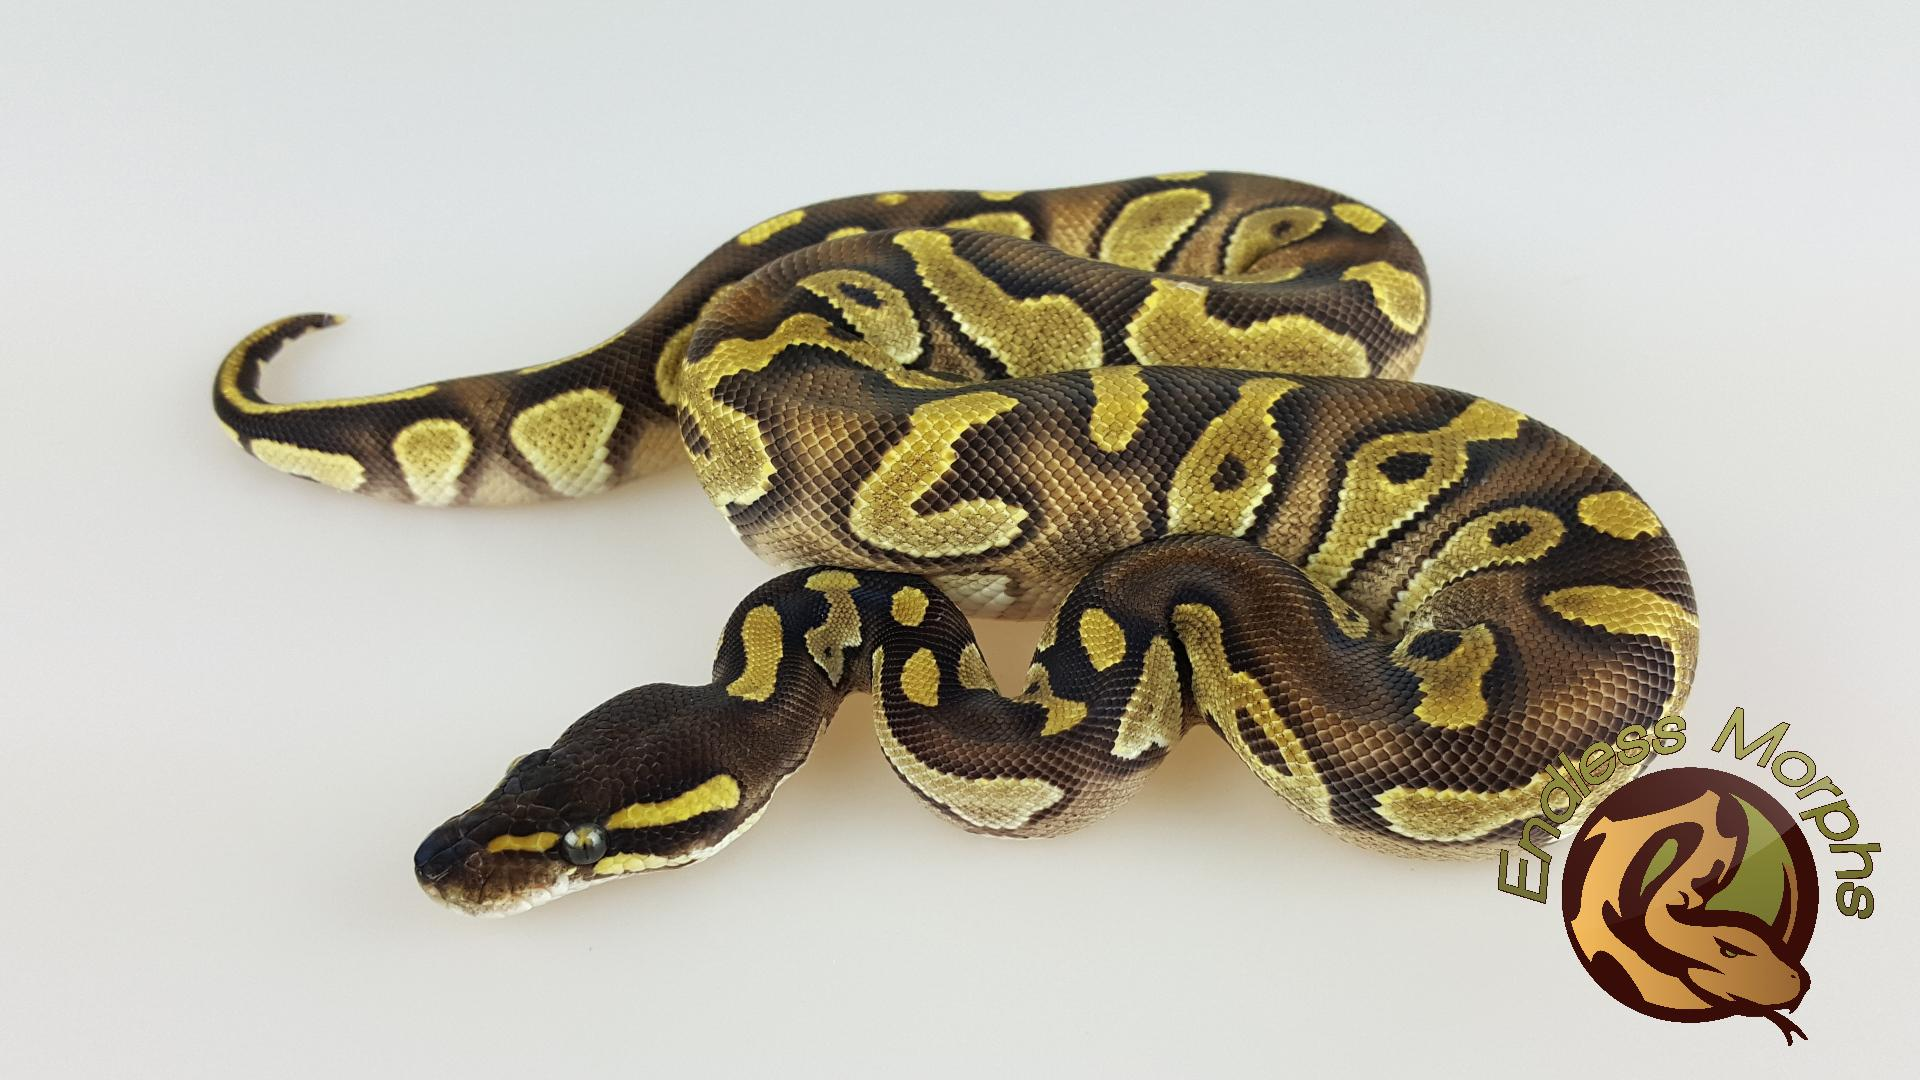 0.1 Black Head Enchi Phantom Königspython